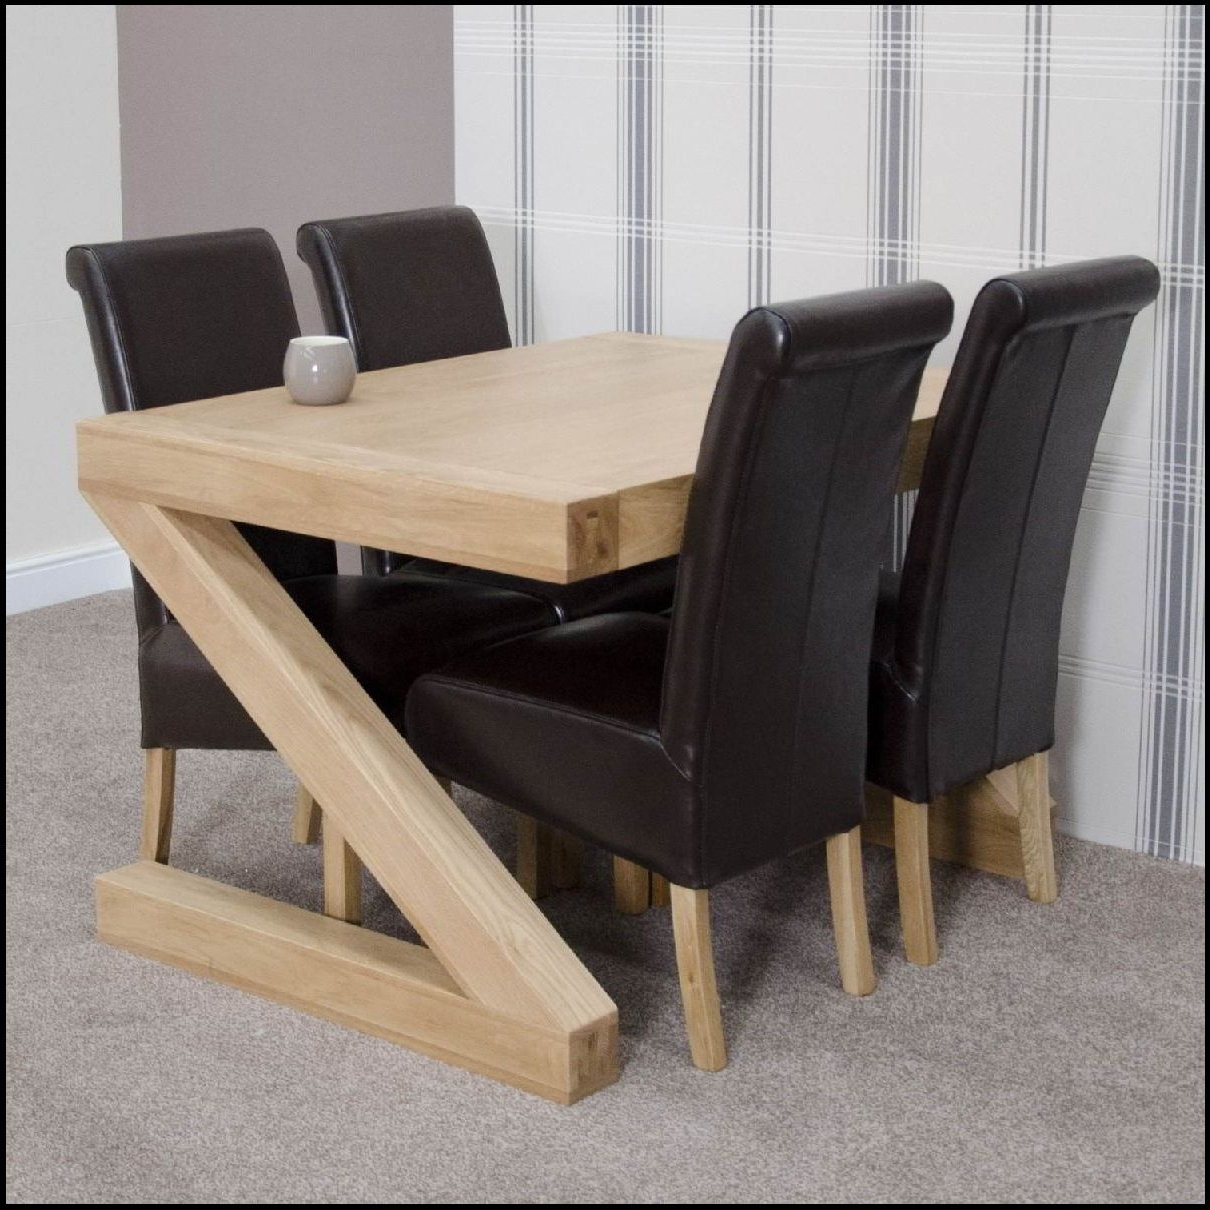 Famous Amazing Oak Dining Table 4 Chairs Tanner Furniture Designs With In Oak Dining Tables And 4 Chairs (View 13 of 25)